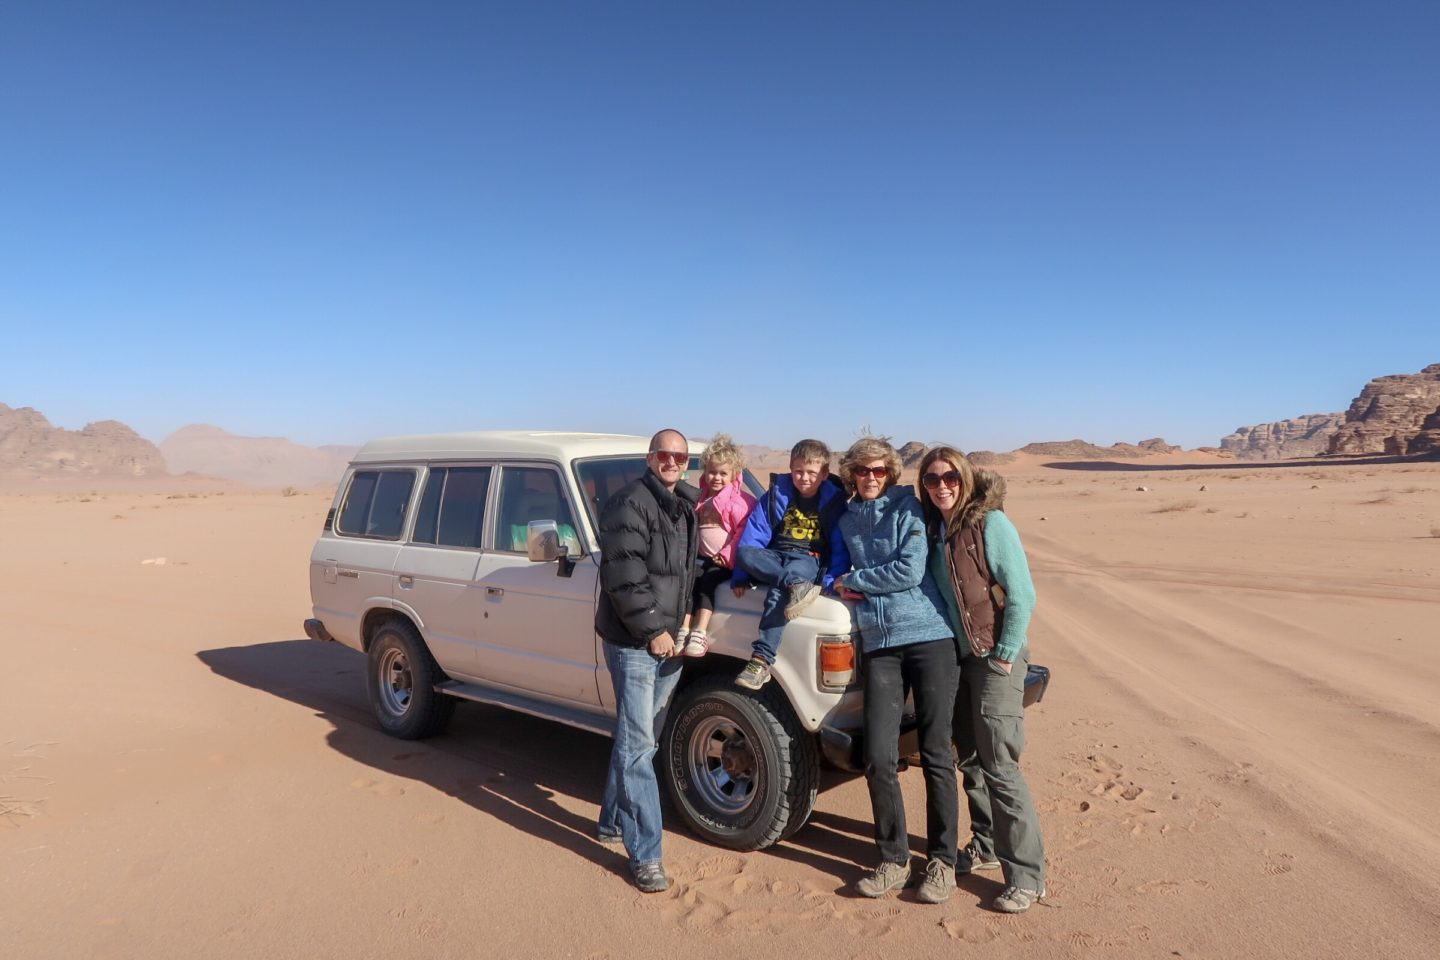 Jordan Itineraries - The Wanderlusters with our 4x4 in Wadi Rum